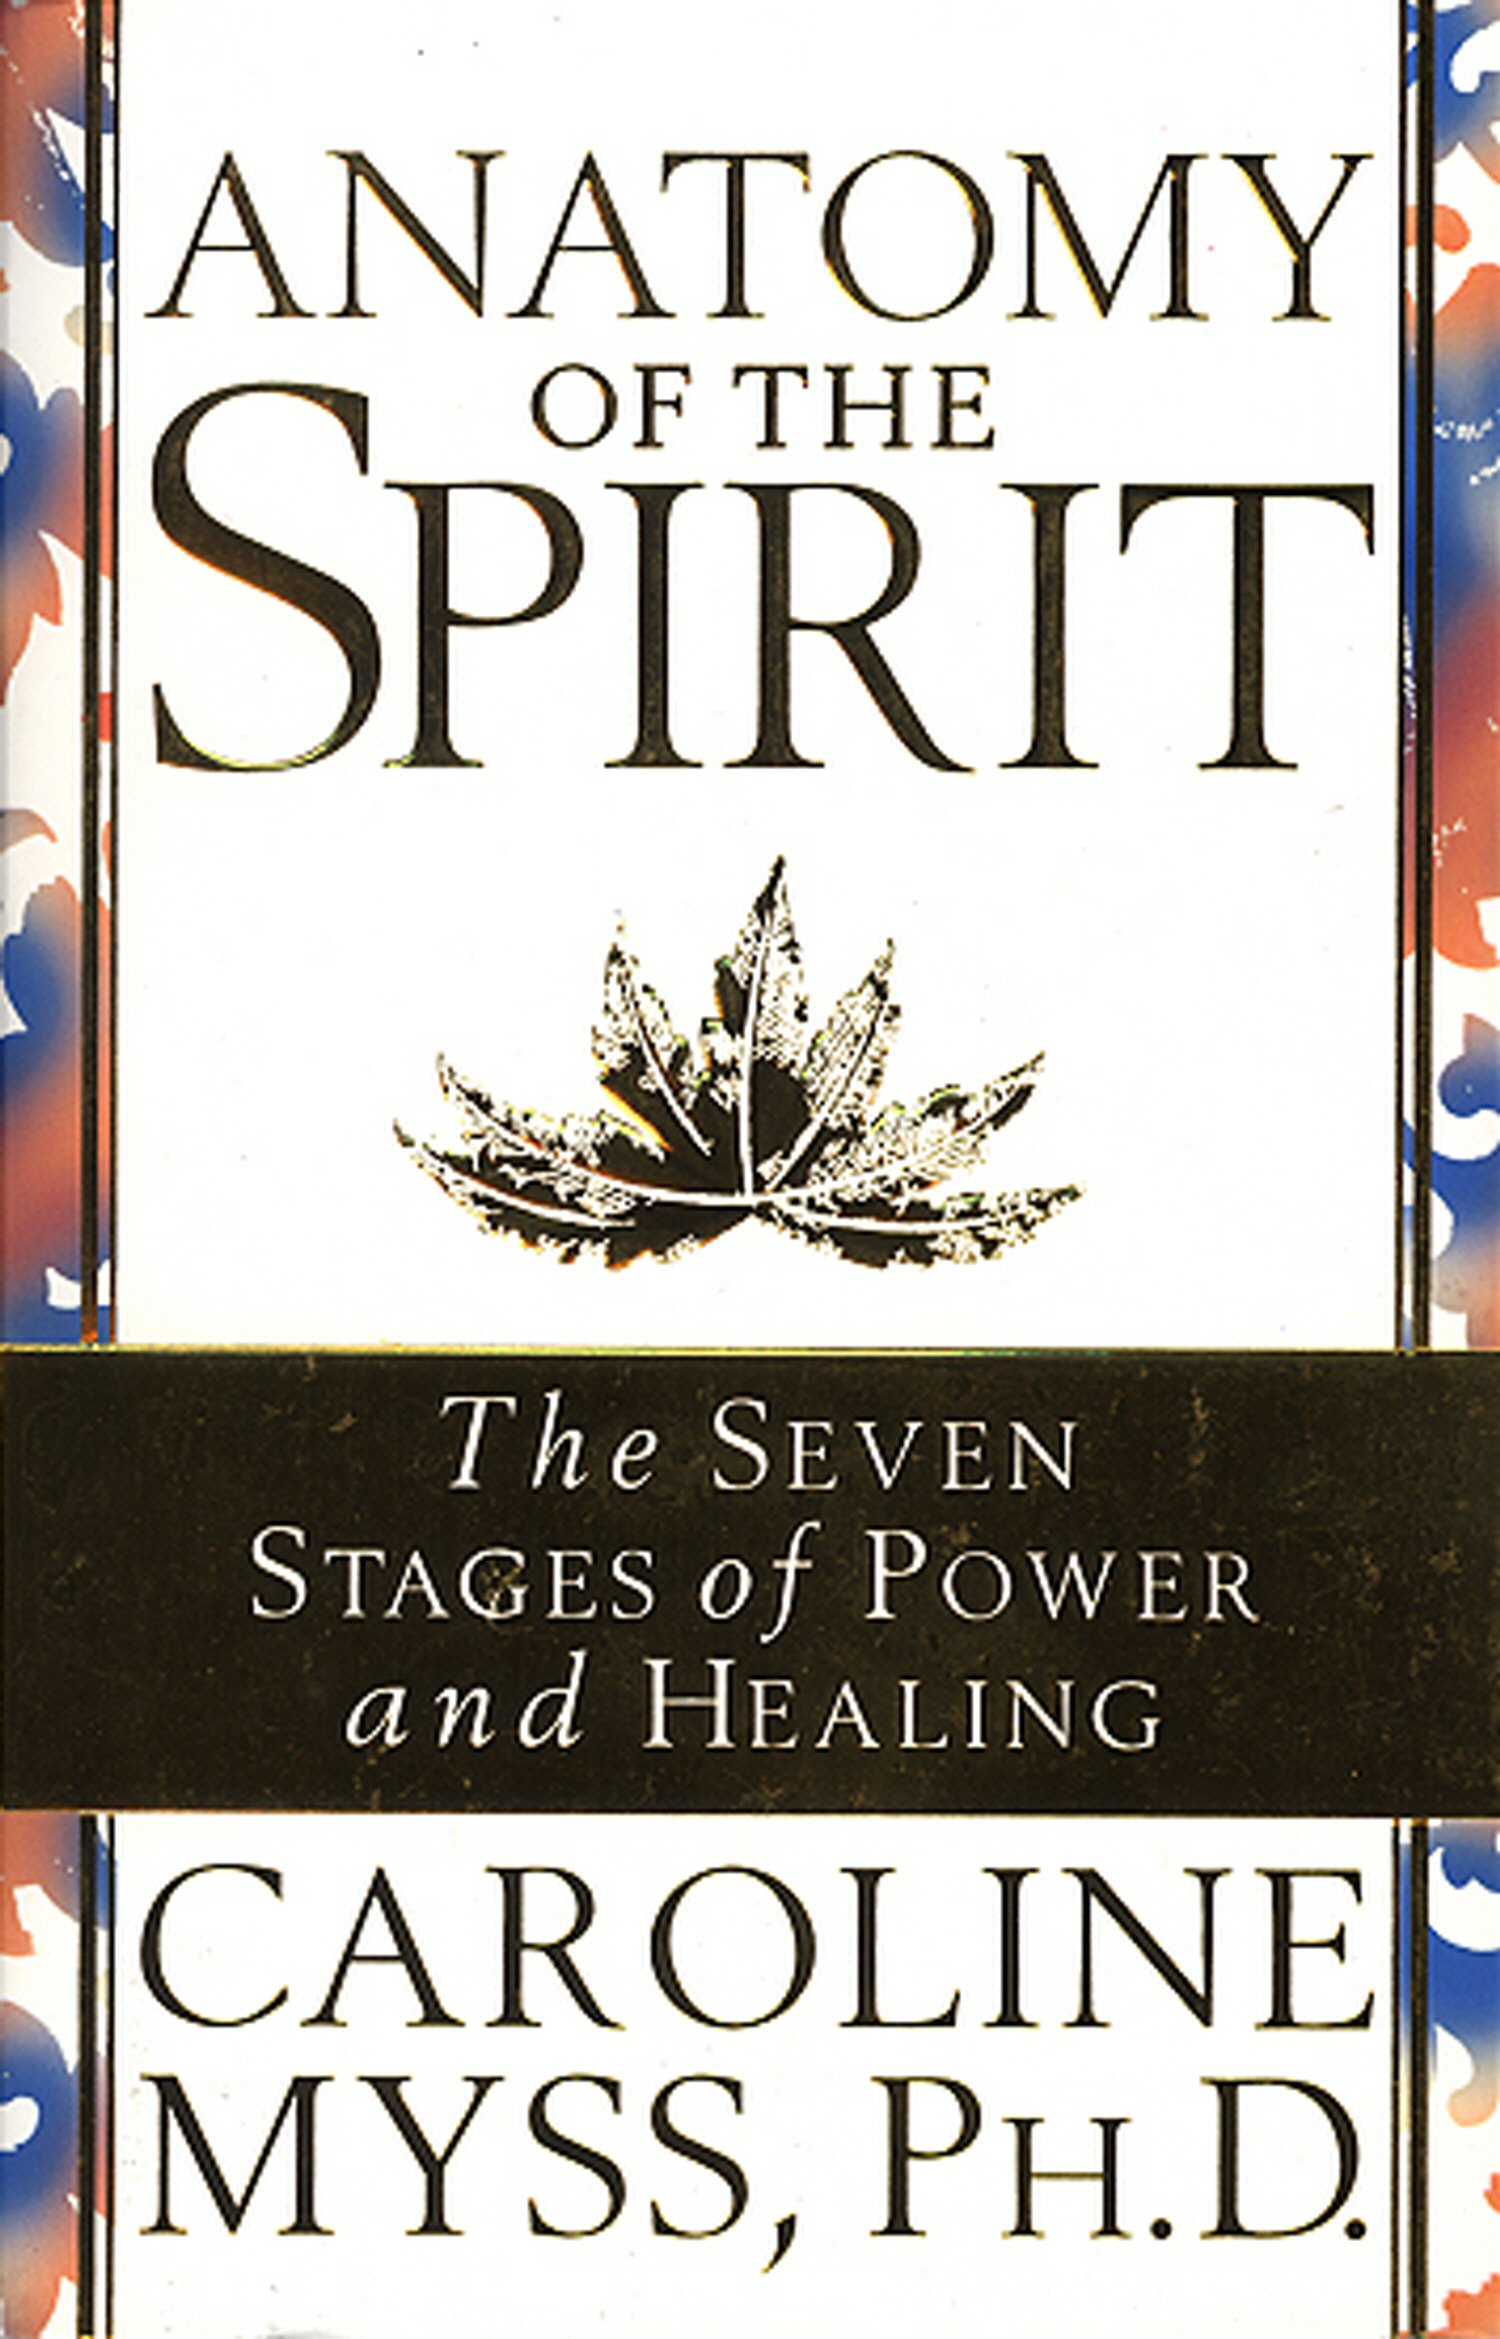 Anatomy Of The Spirit: The Seven Stages of Power and Healing: Amazon ...